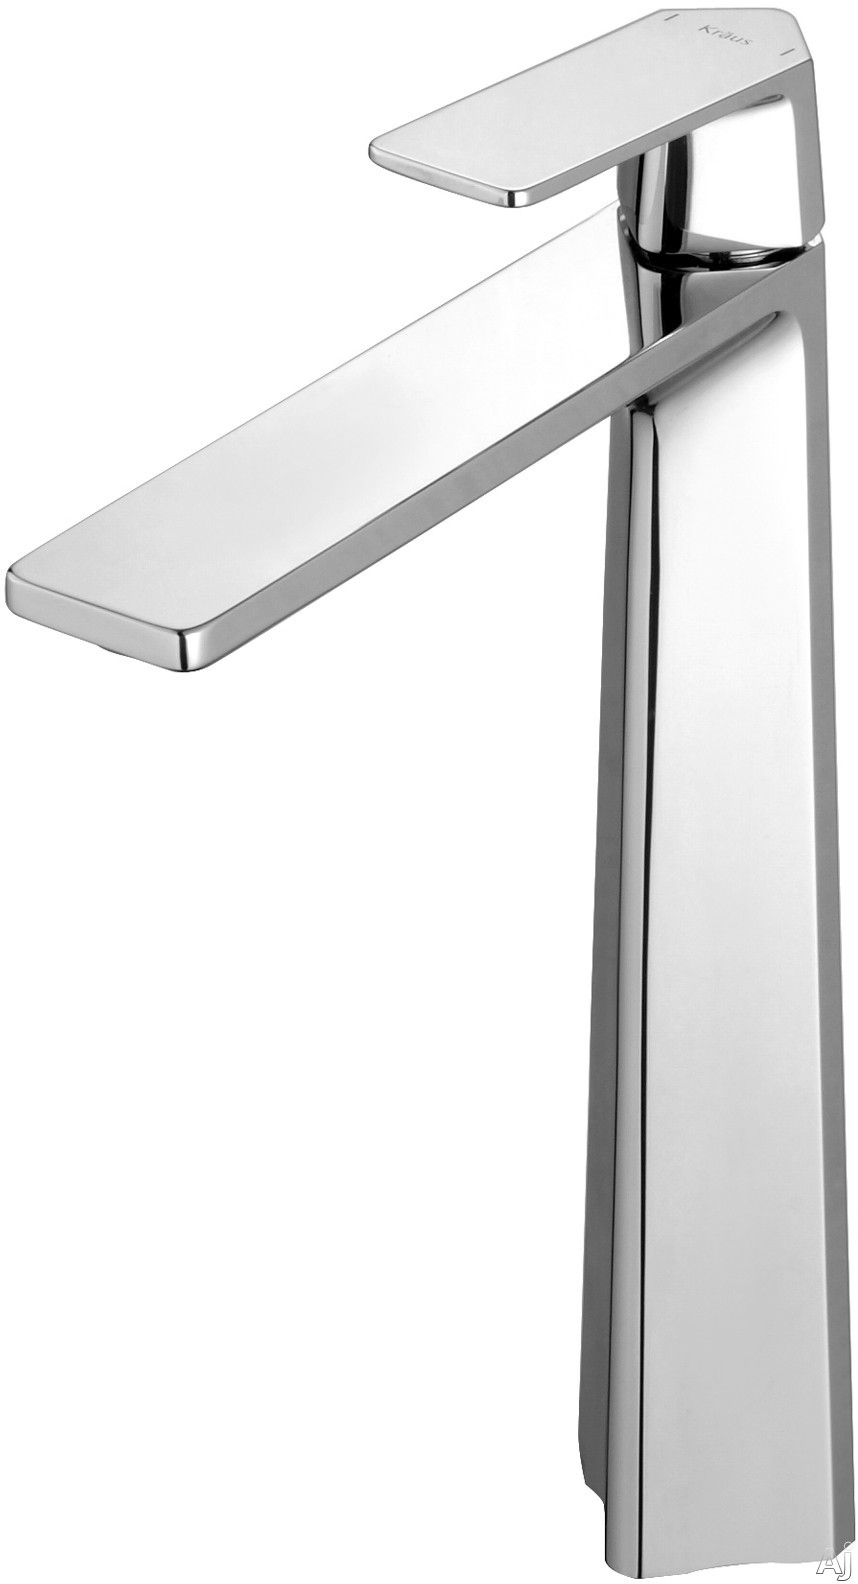 Kraus Exquisite Collection KEF15300CH Single Lever Bath Faucet with 6 3/8